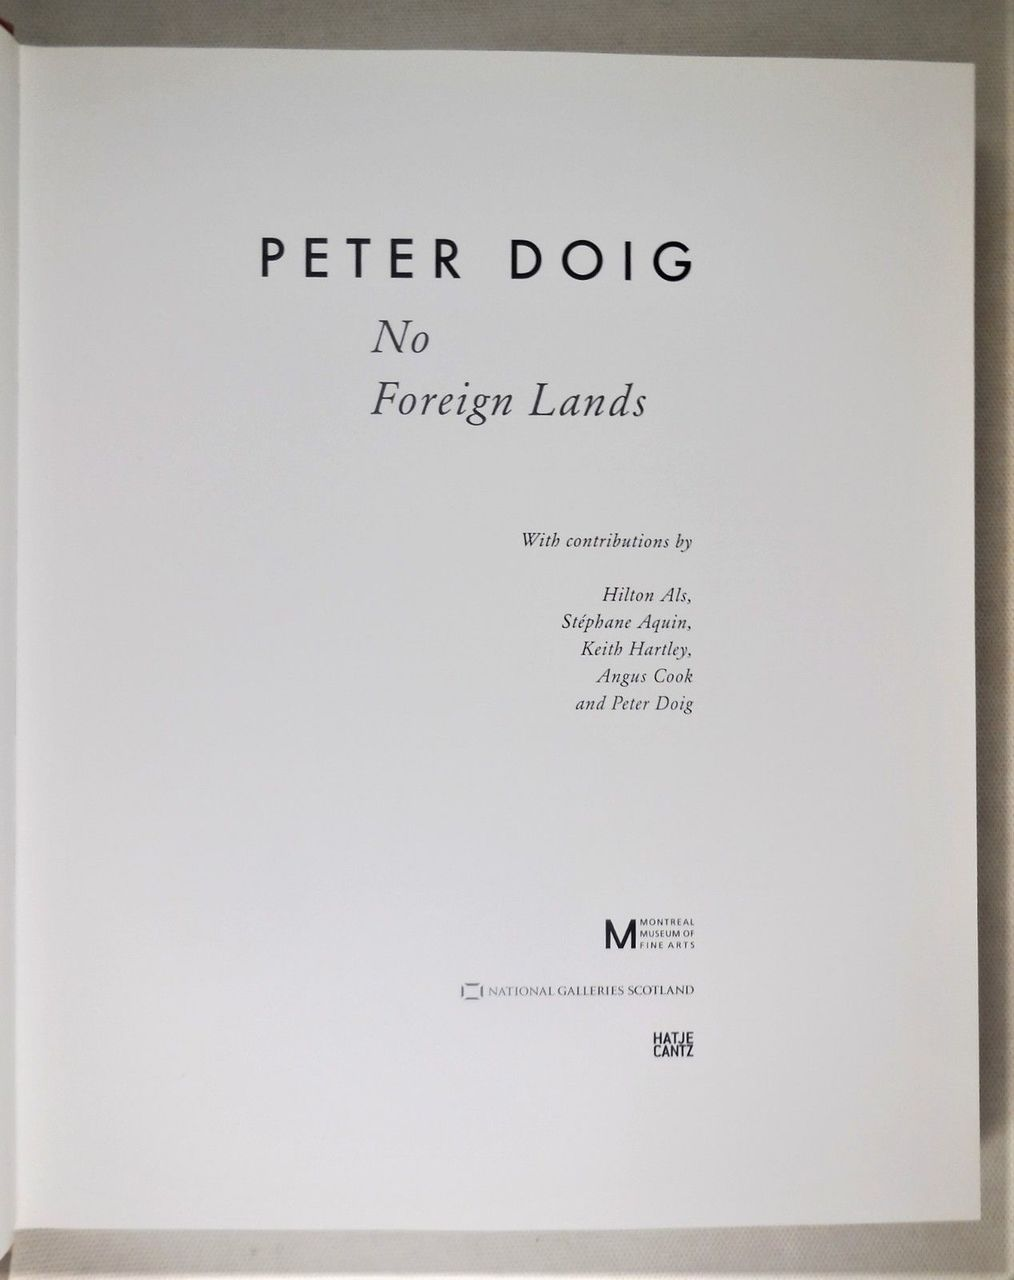 PETER DOIG: NO FOREIGN LANDS - 2013